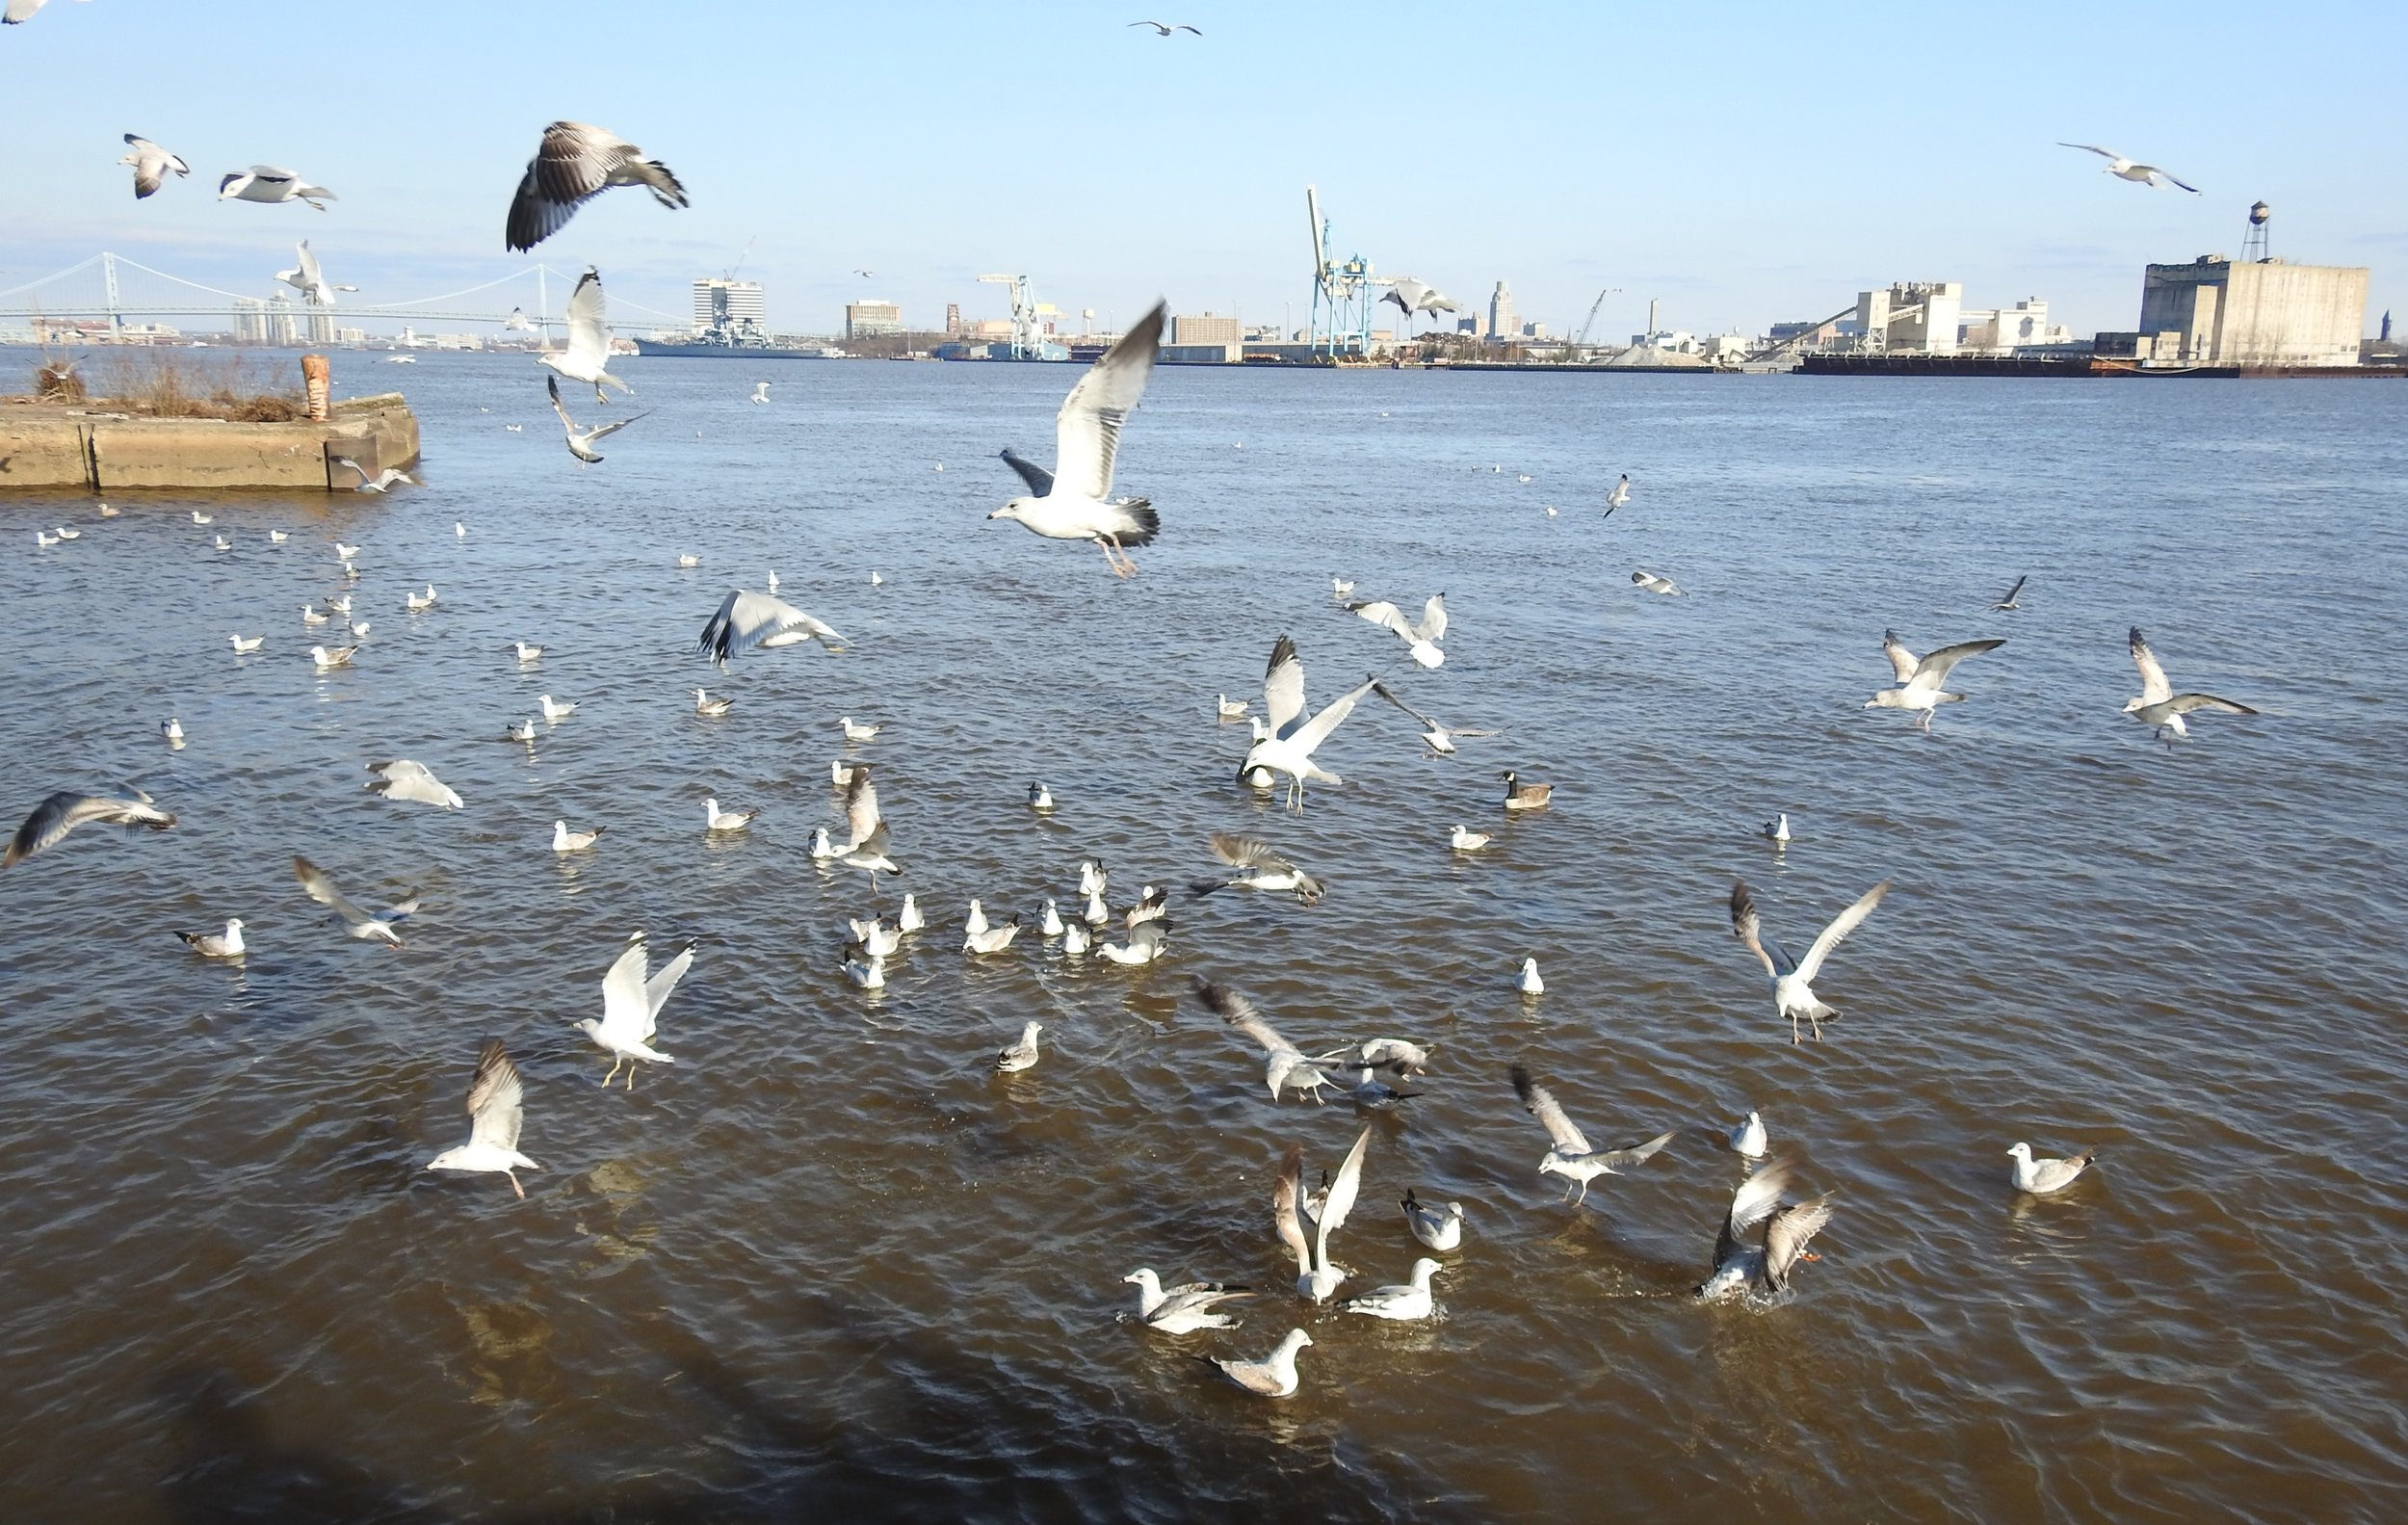 Mixed flock of gulls on the Delaware River. Photo by Toribird.